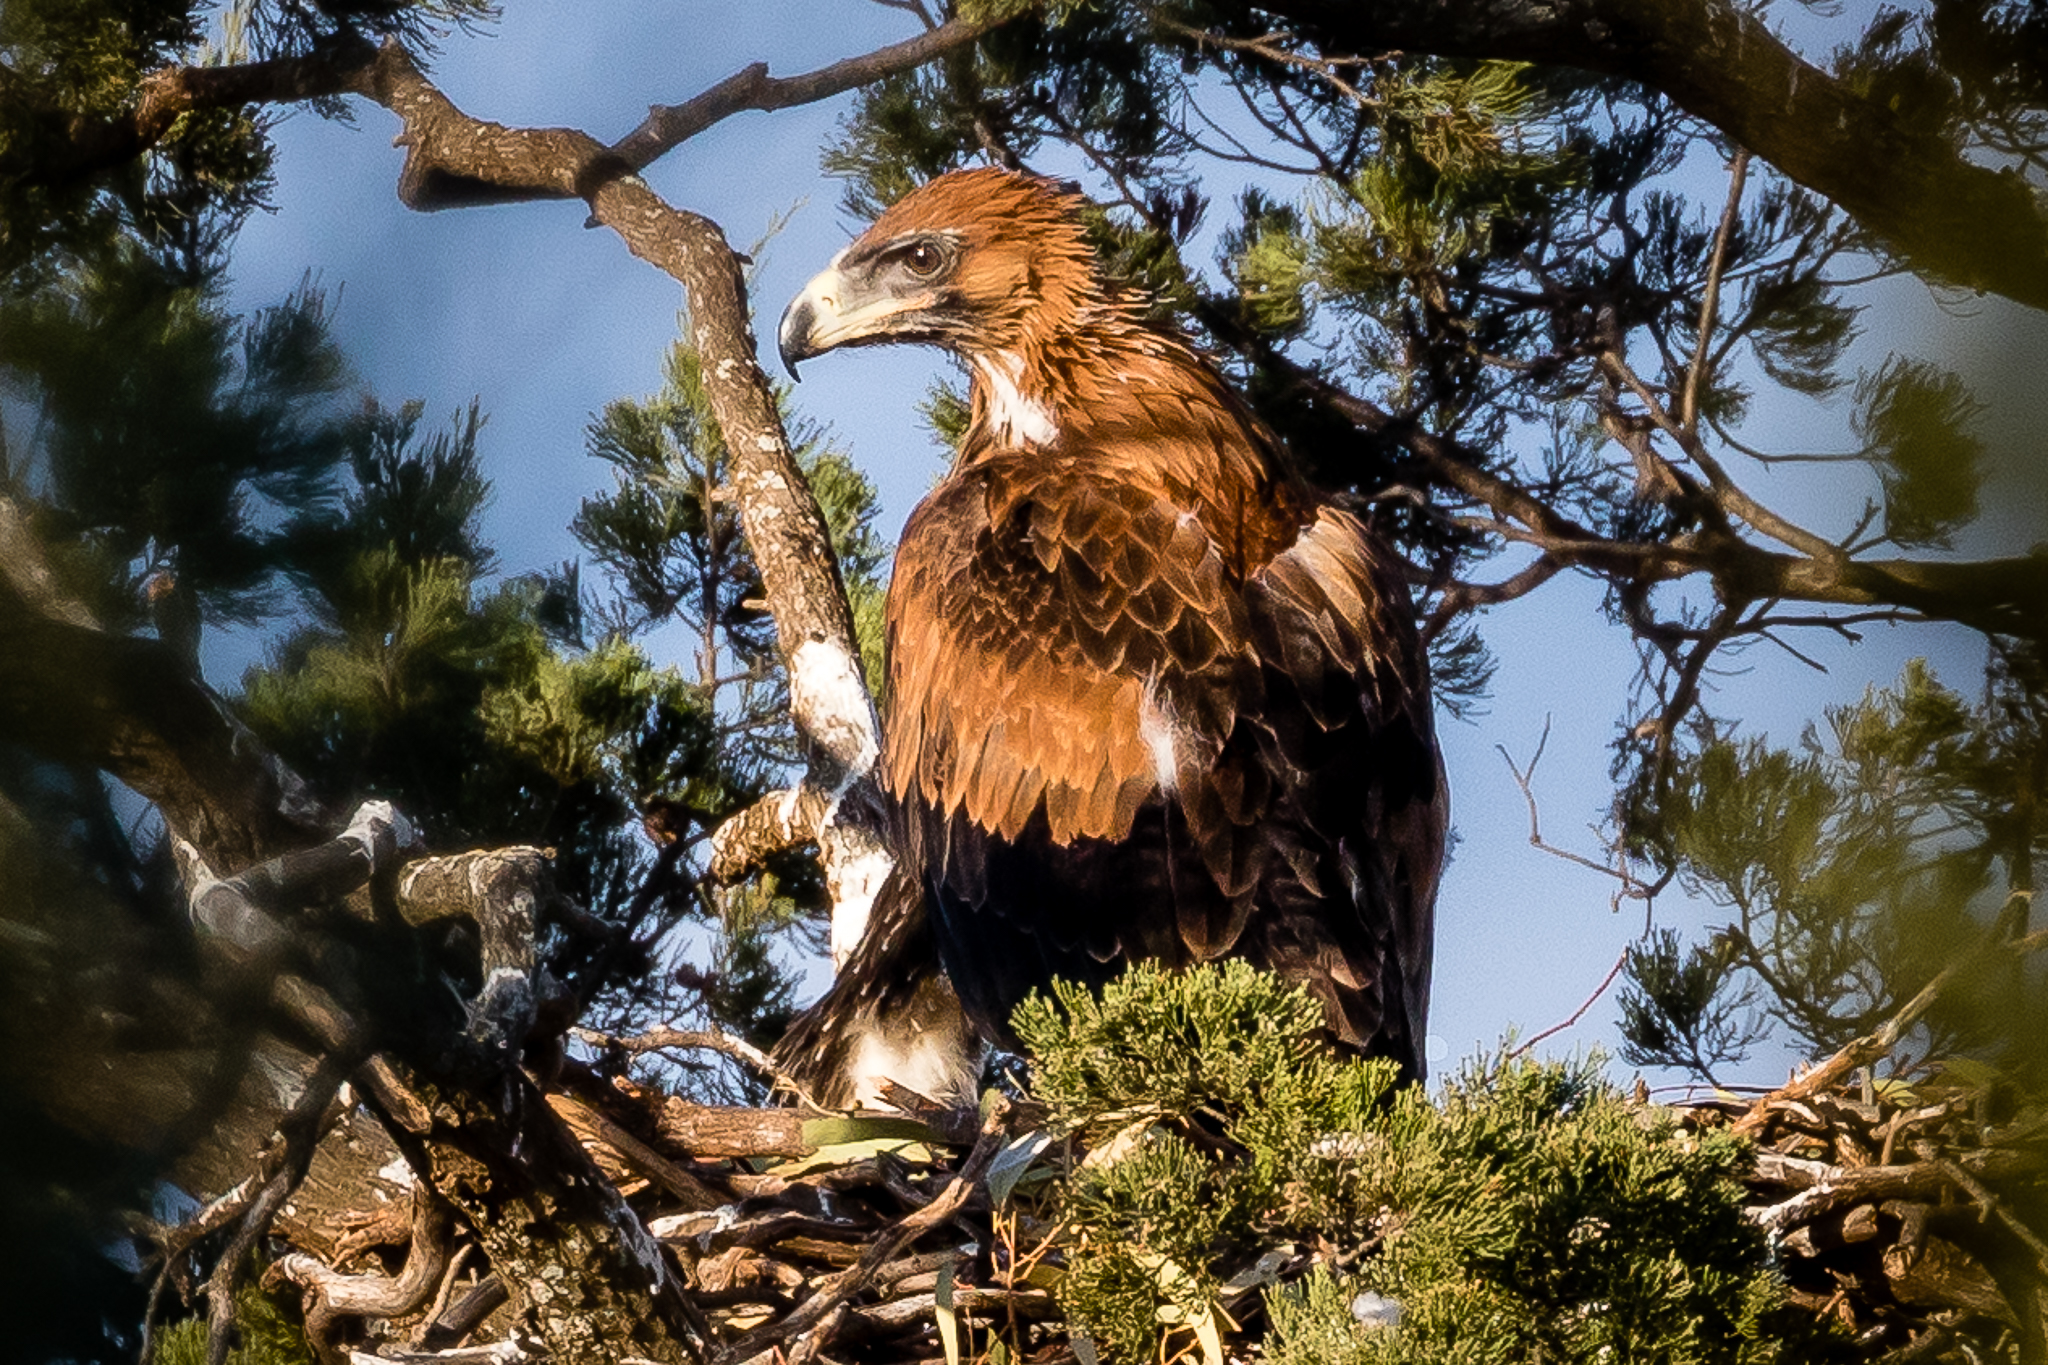 This young Wedge-tailed Eagle is nearly ready to leave the nest. This photograph was taken from a distance with telescopic lens to avoid disturbing the bird. Fully grown, its wingspan may reach 2.3 metres. Wedge-tailed Eagles are seen, often soaring high, across the farmlands around Rankin Springs.